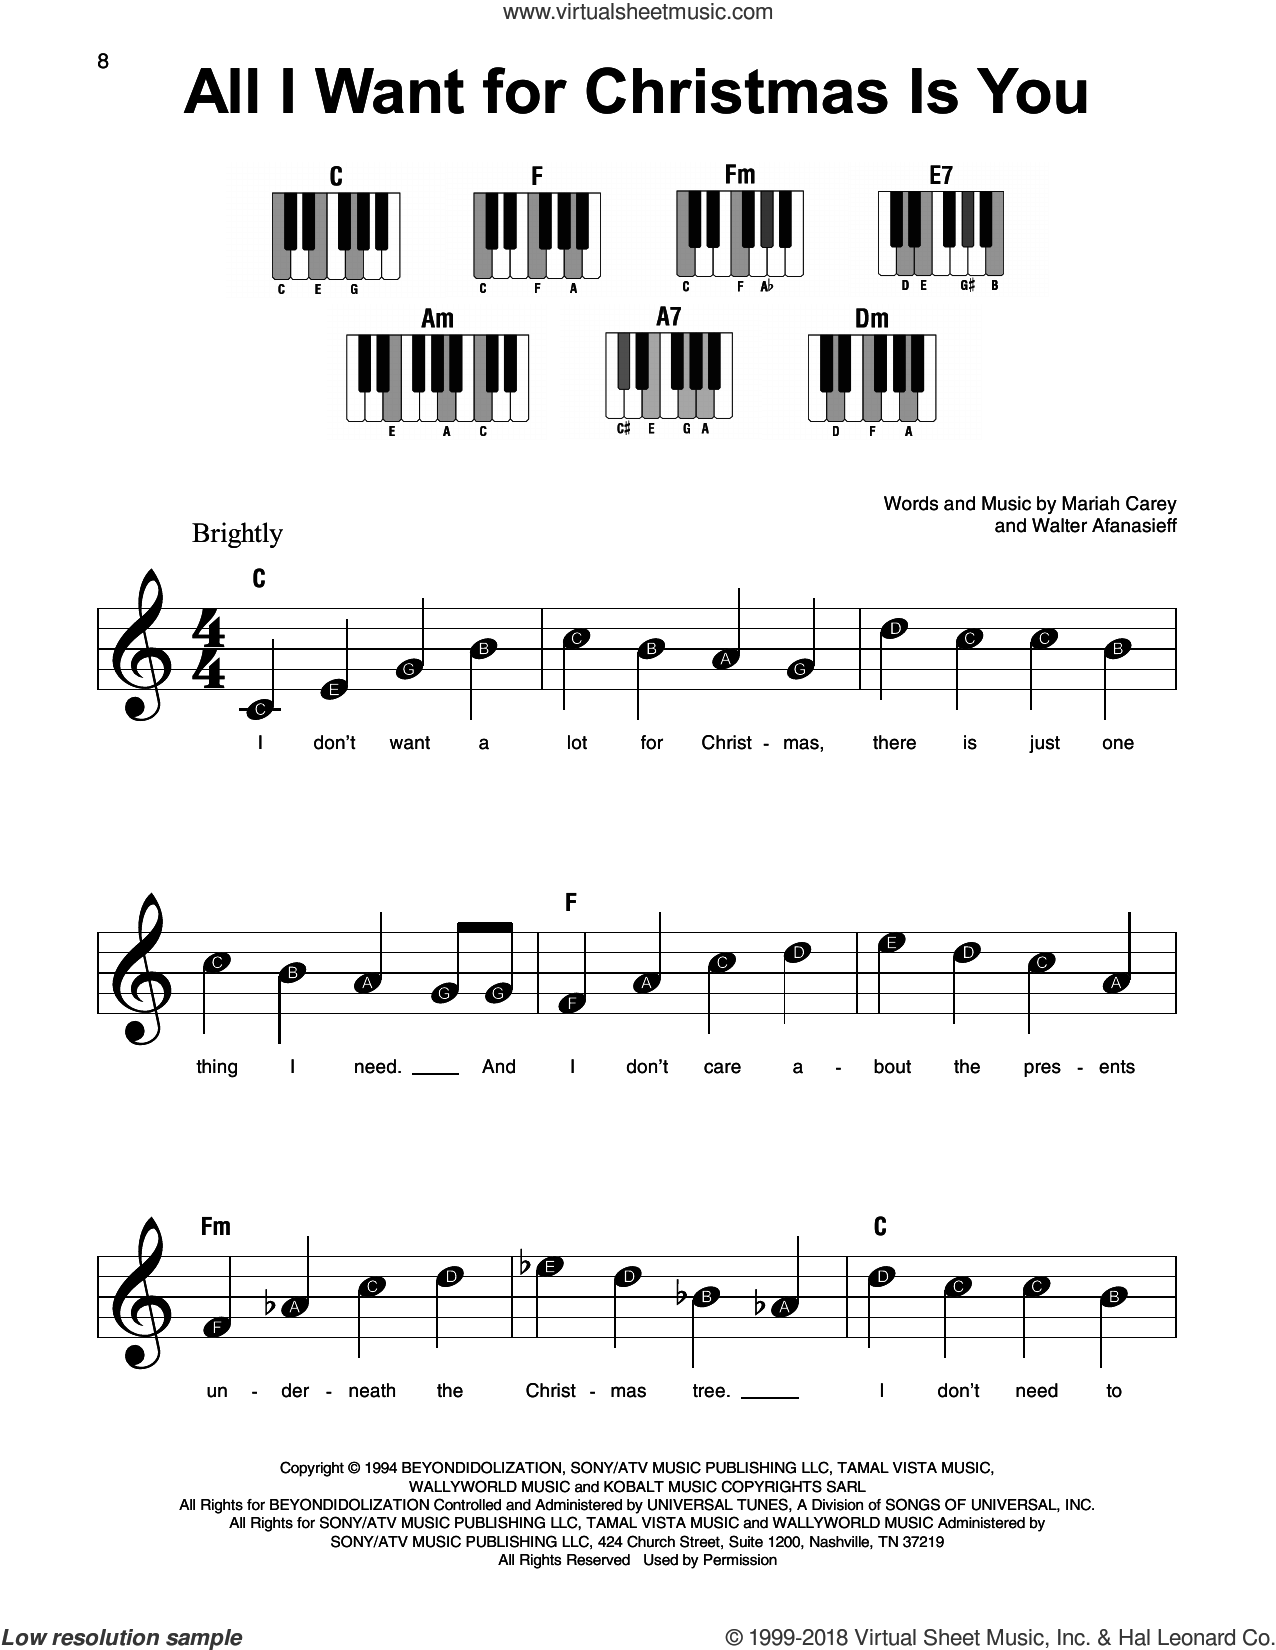 All I Want For Christmas Is You sheet music for piano solo by Mariah Carey and Walter Afanasieff, beginner skill level